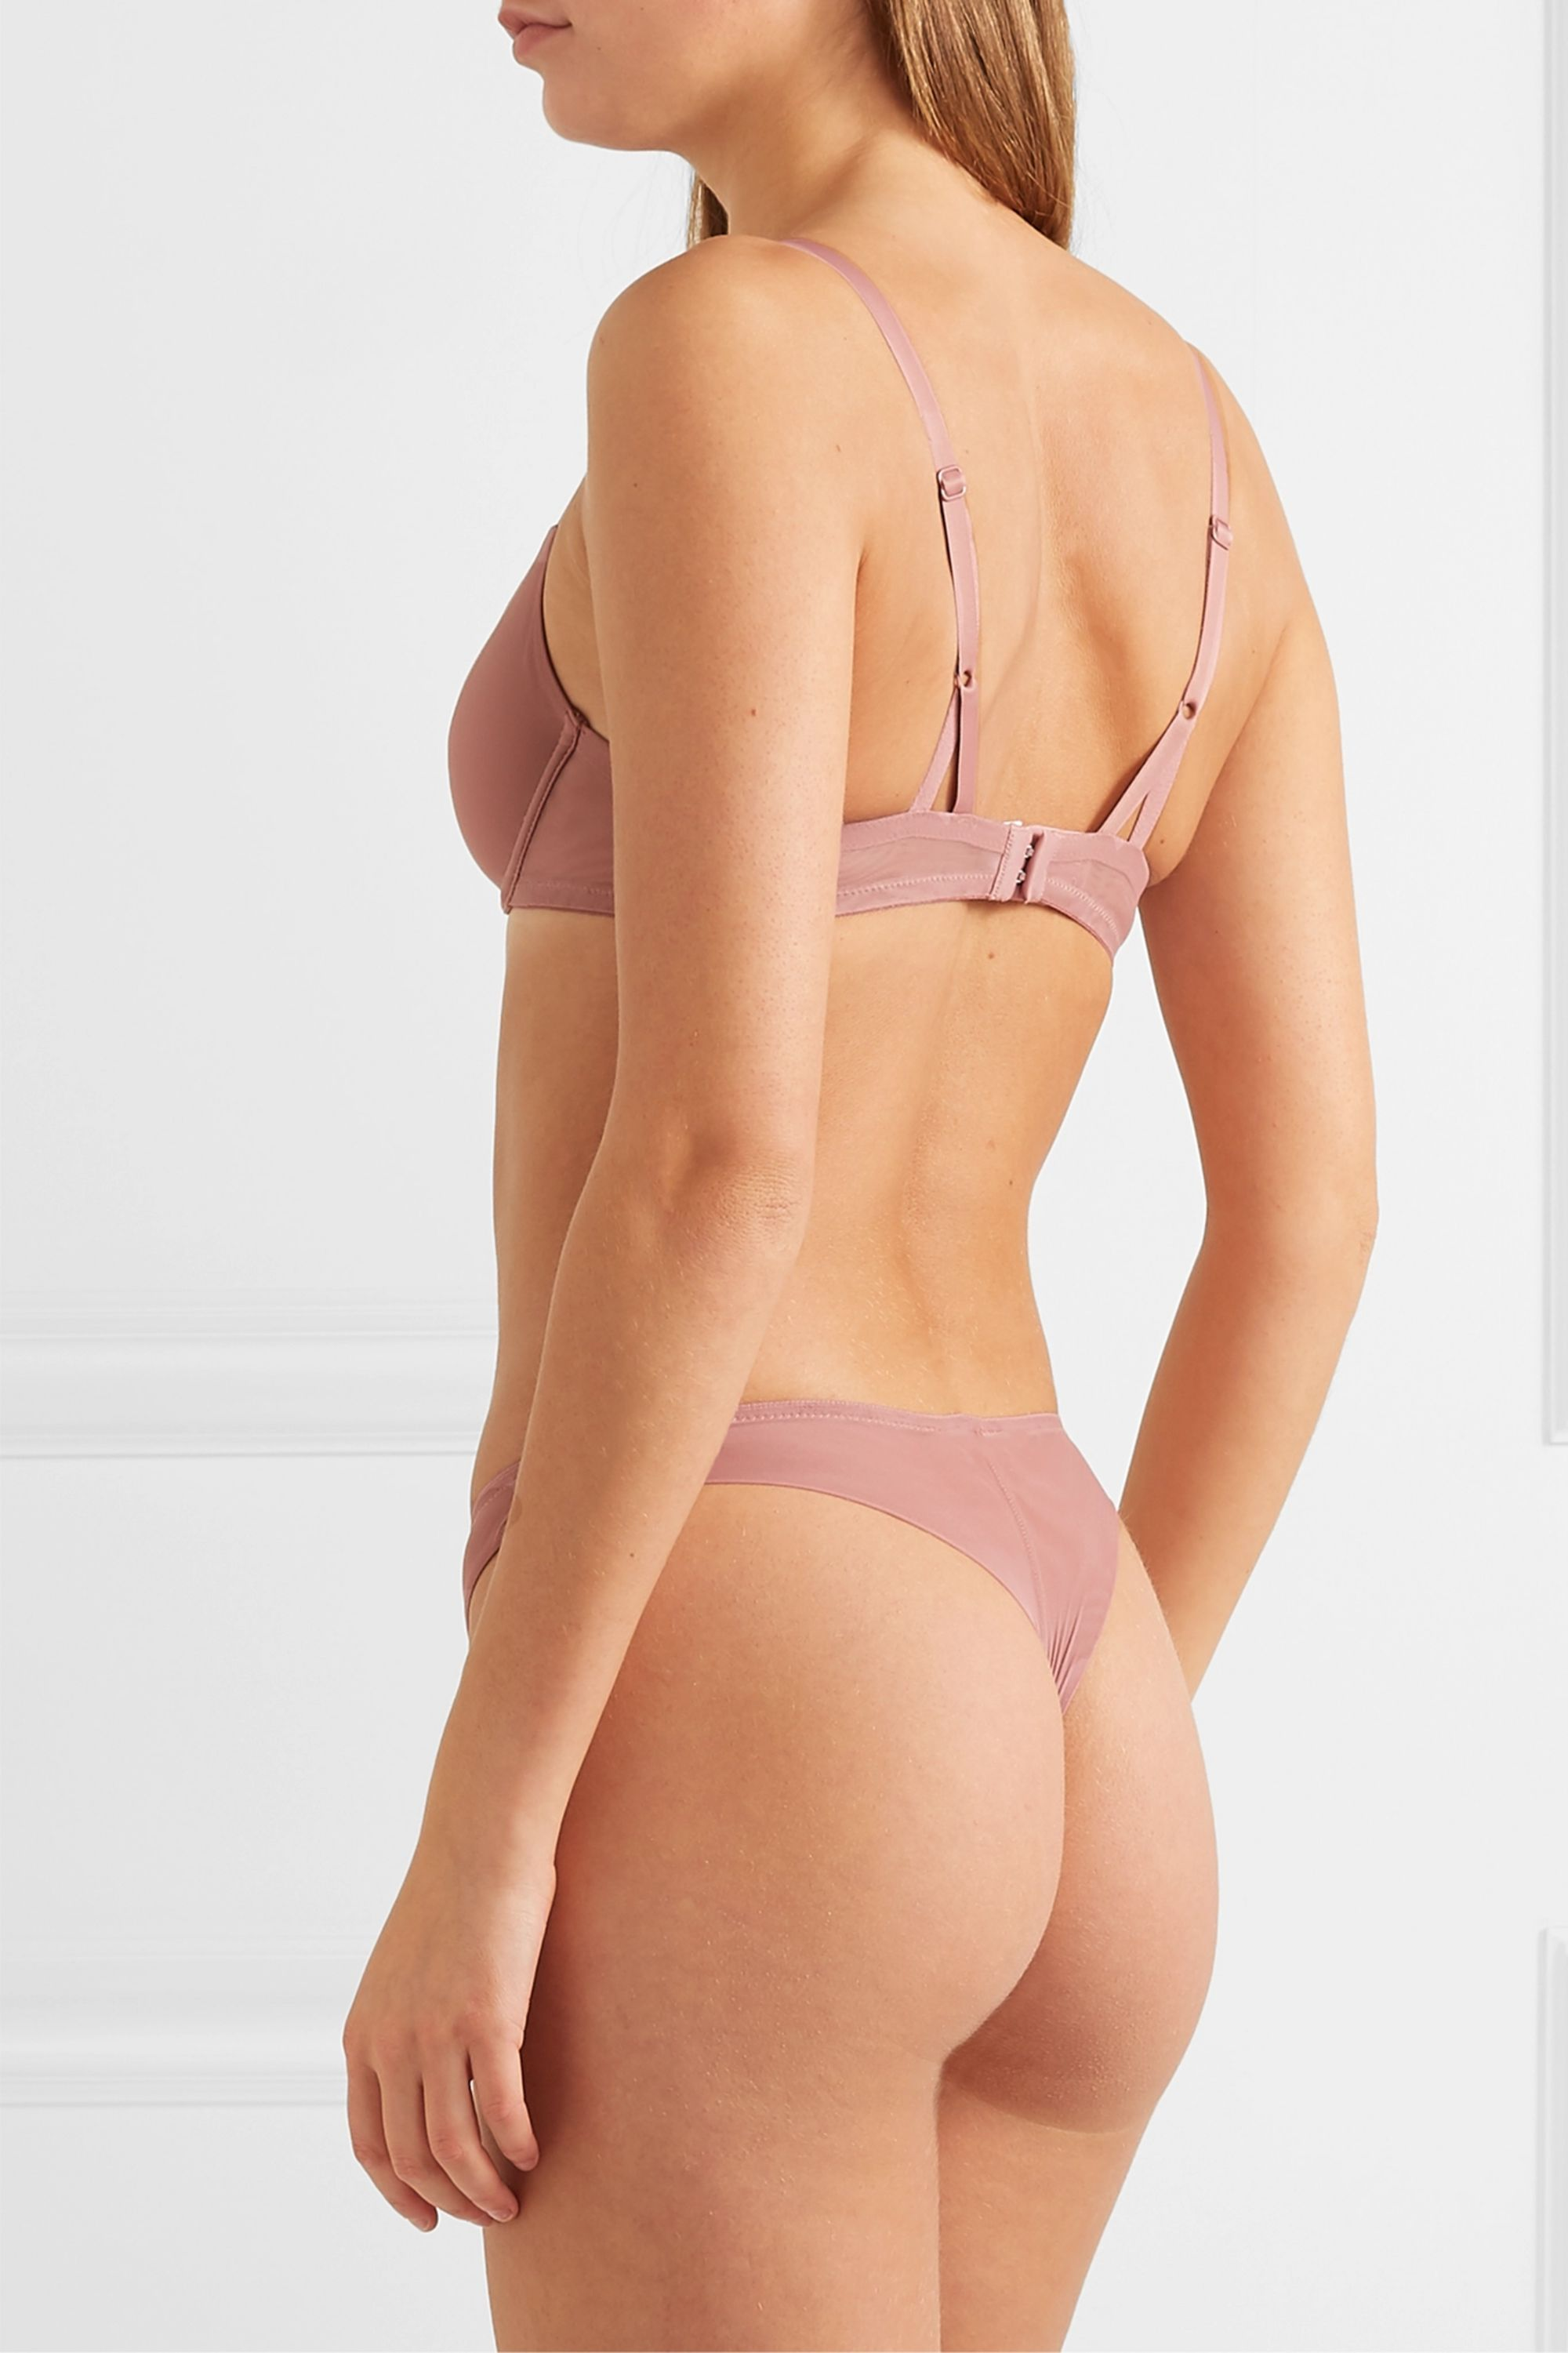 The Great Eros Canova stretch-tulle underwired bra